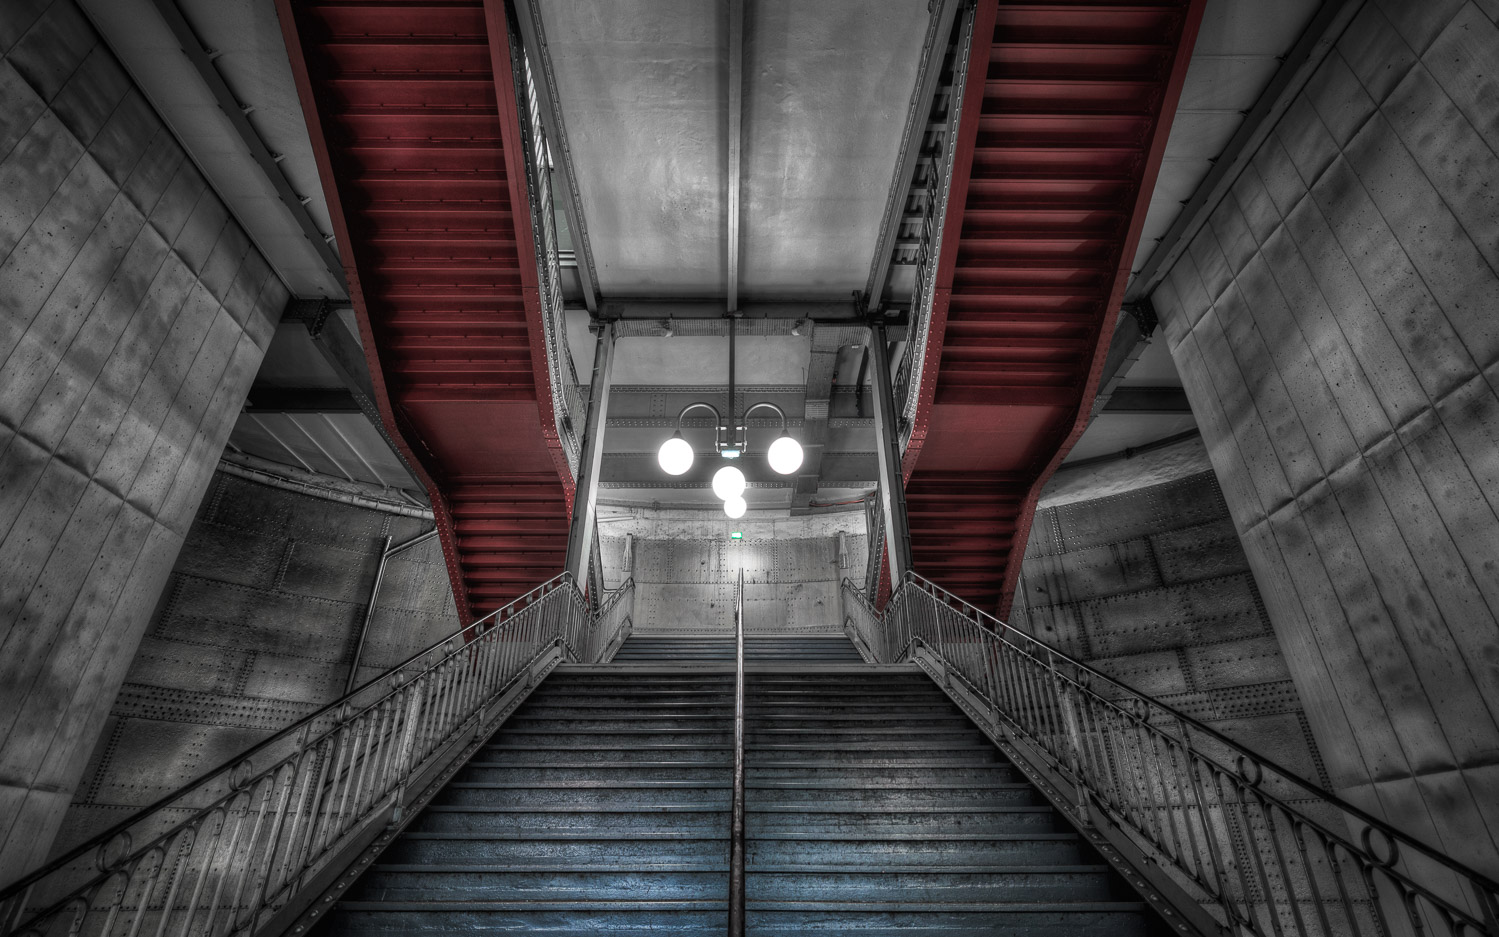 https://i0.wp.com/digital-photography-school.com/wp-content/uploads/2018/07/Stairs-to-Cite.jpg?resize=1499%2C937&ssl=1